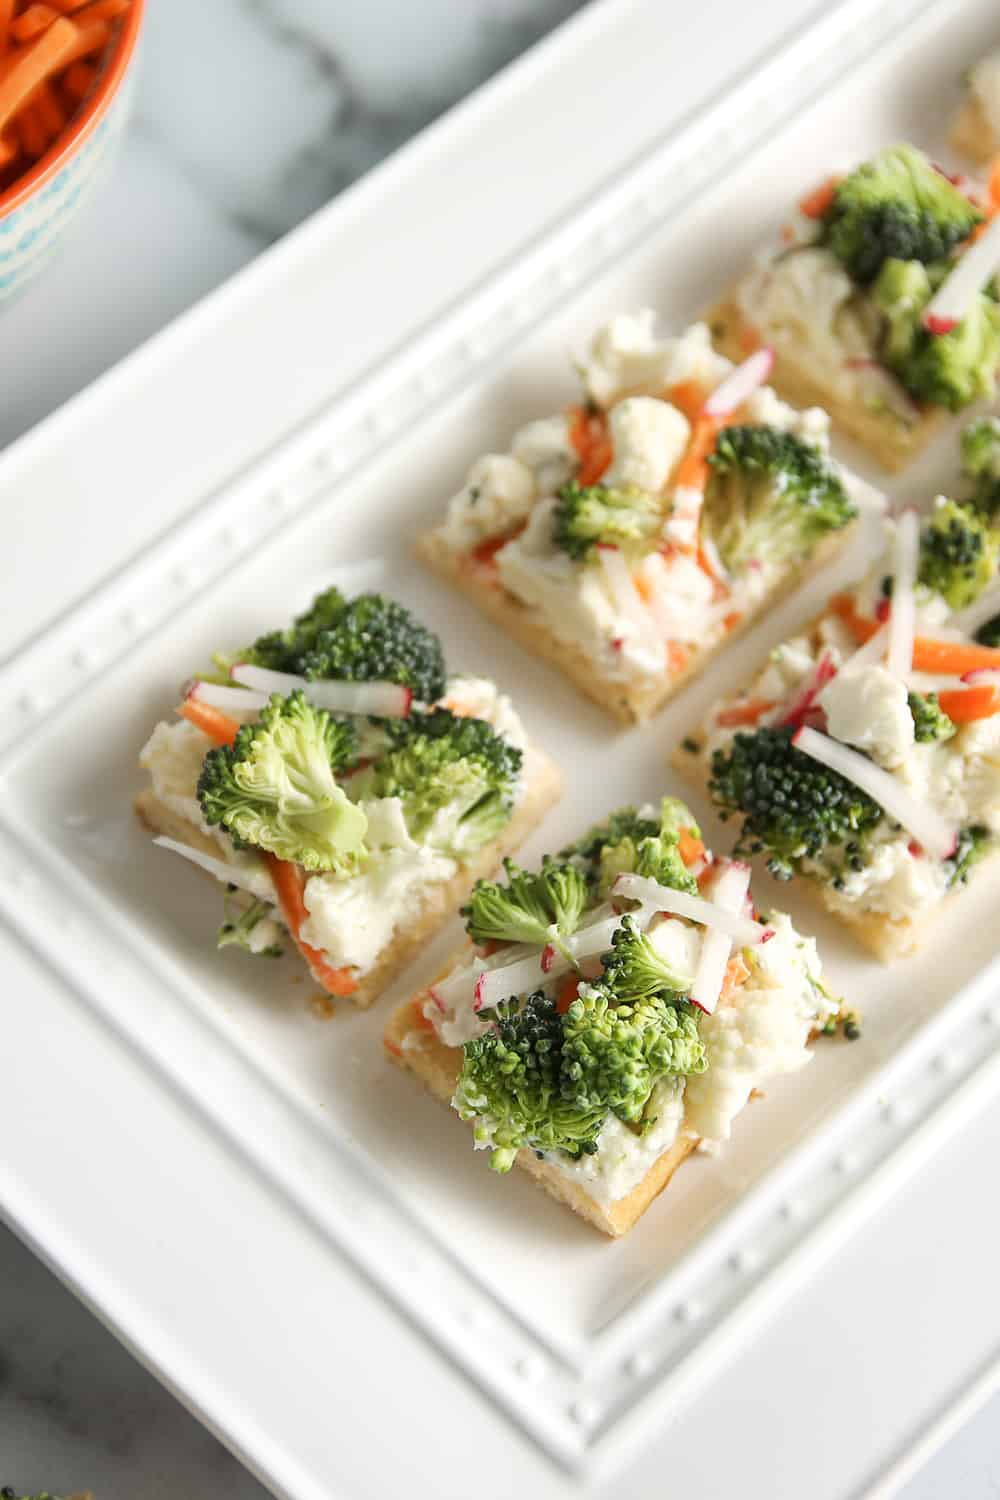 Vegetable Pizza is a staple appetizer in the Midwest